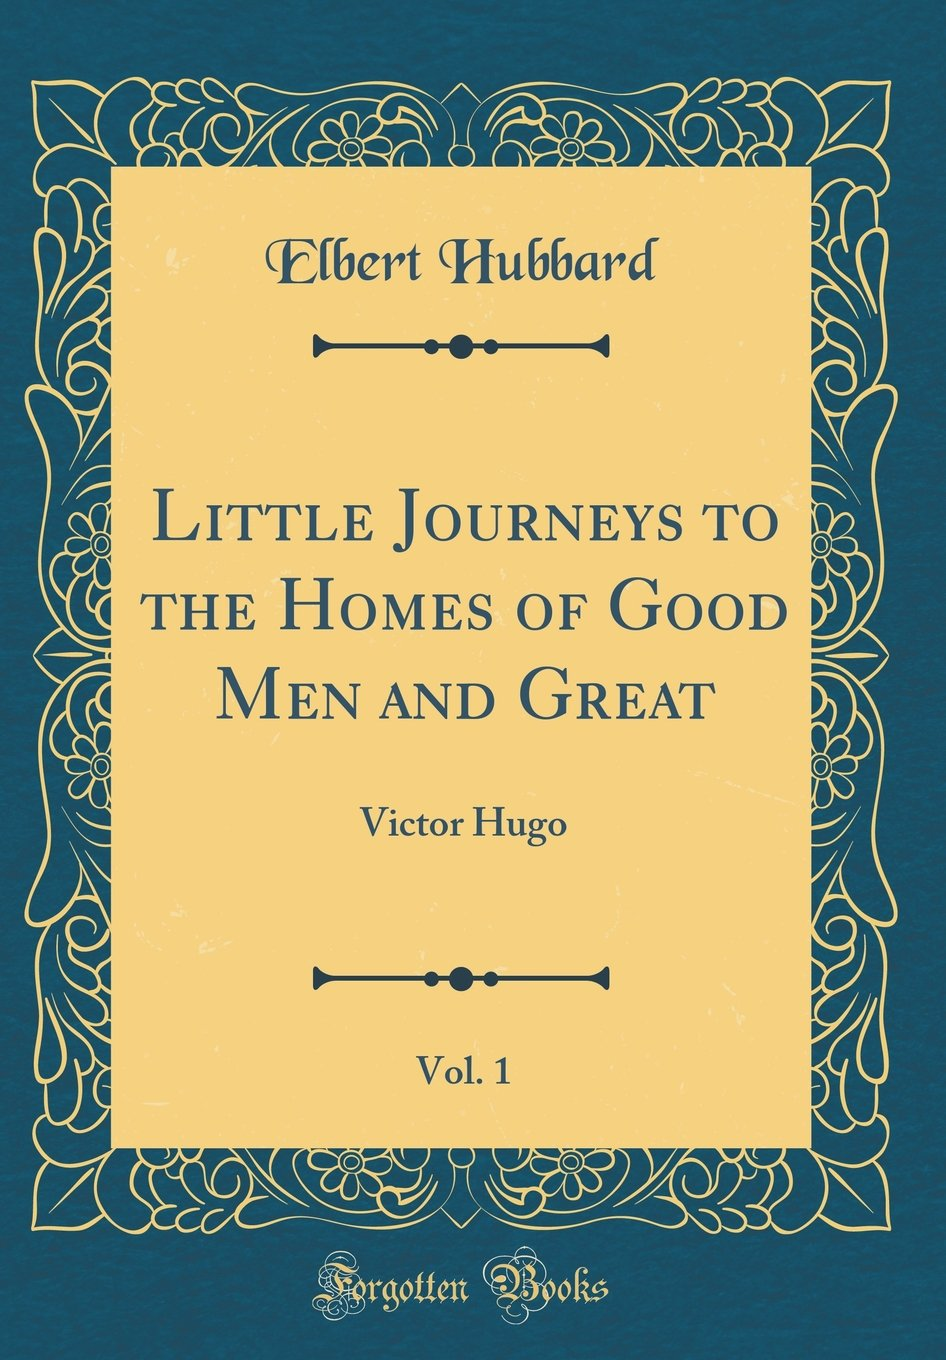 Little Journeys to the Homes of Good Men and Great, Vol. 1: Victor Hugo (Classic Reprint) pdf